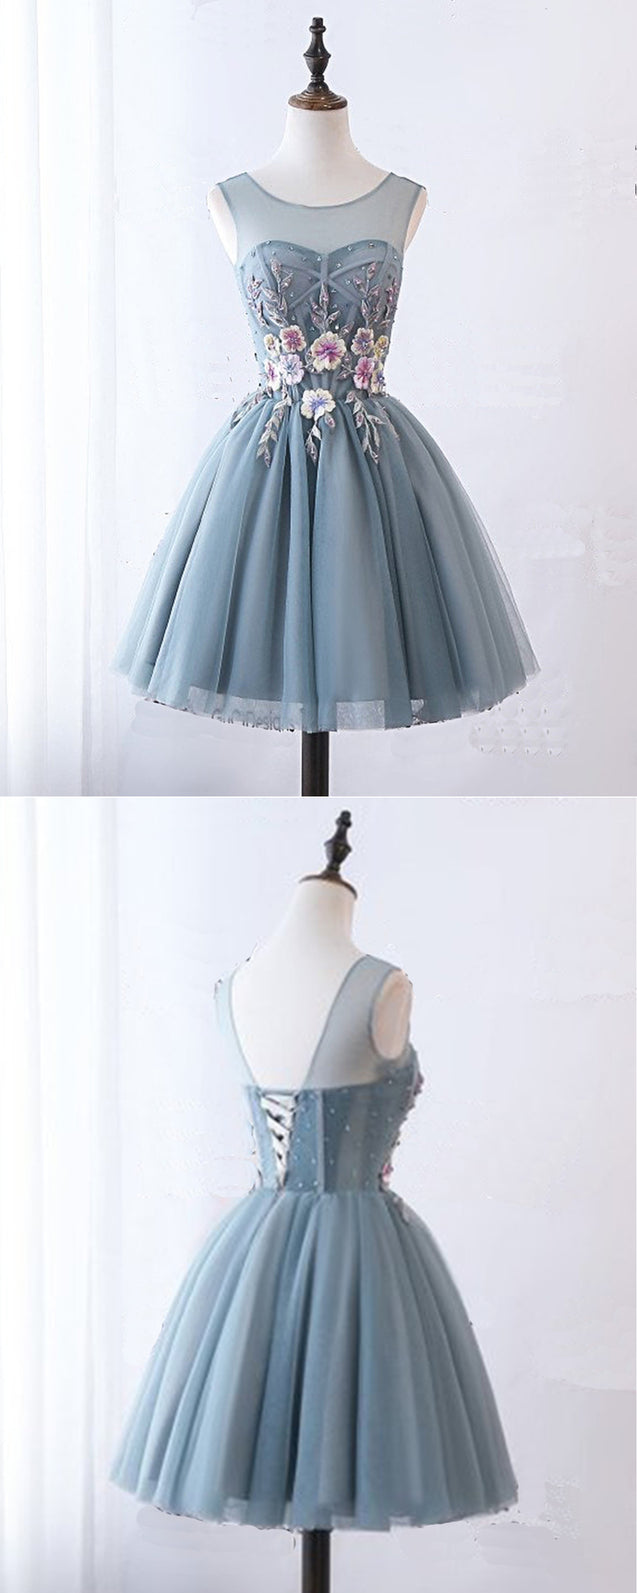 Blue Gray Tulle Short Halter Prom Dress, Homecoming Dress With Lace Applique